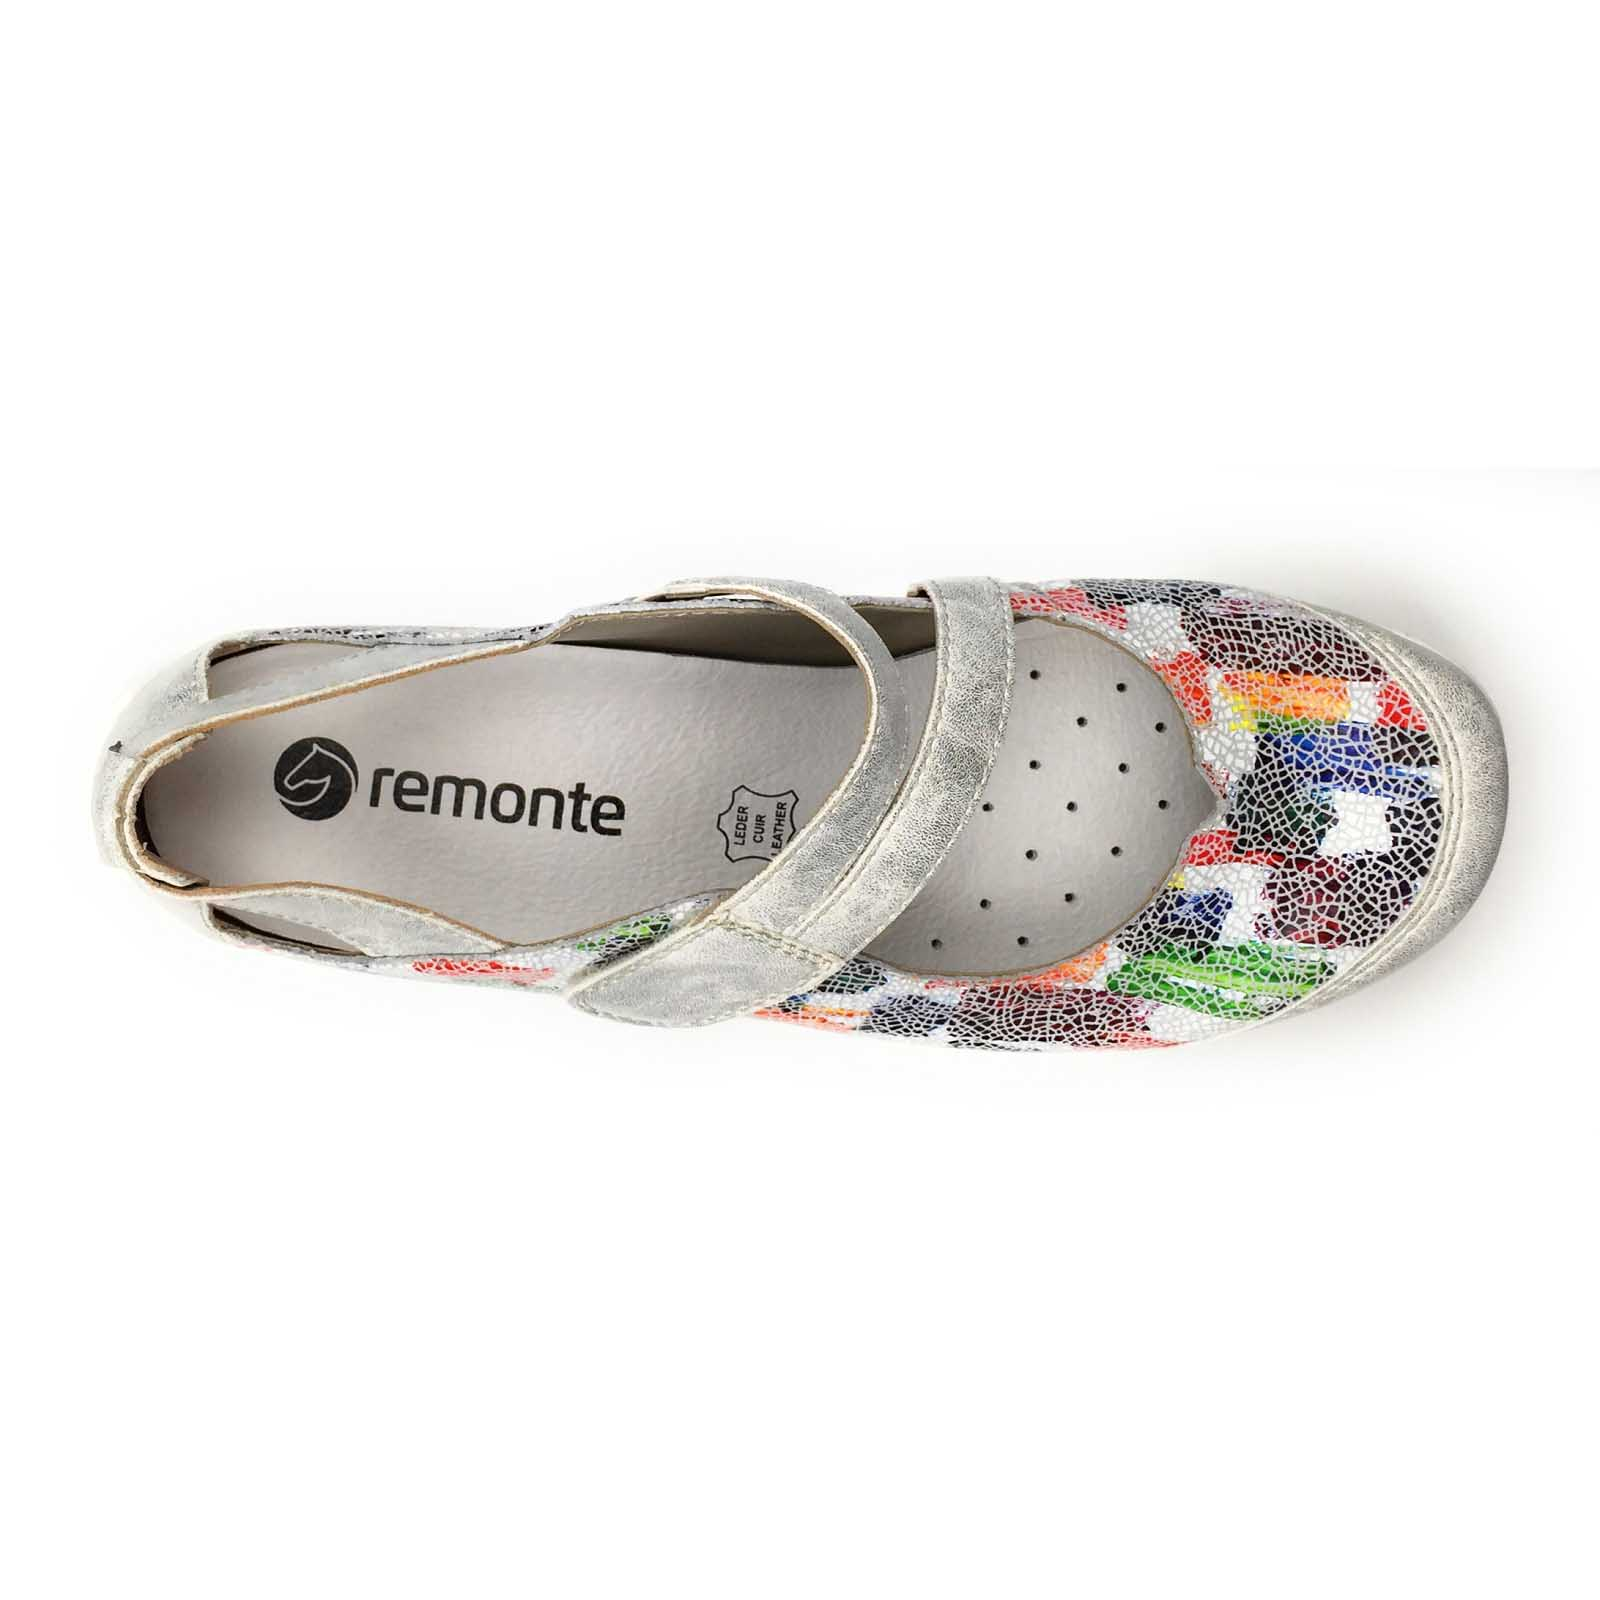 Remonte mary janes r3427 multicolore8018203_5